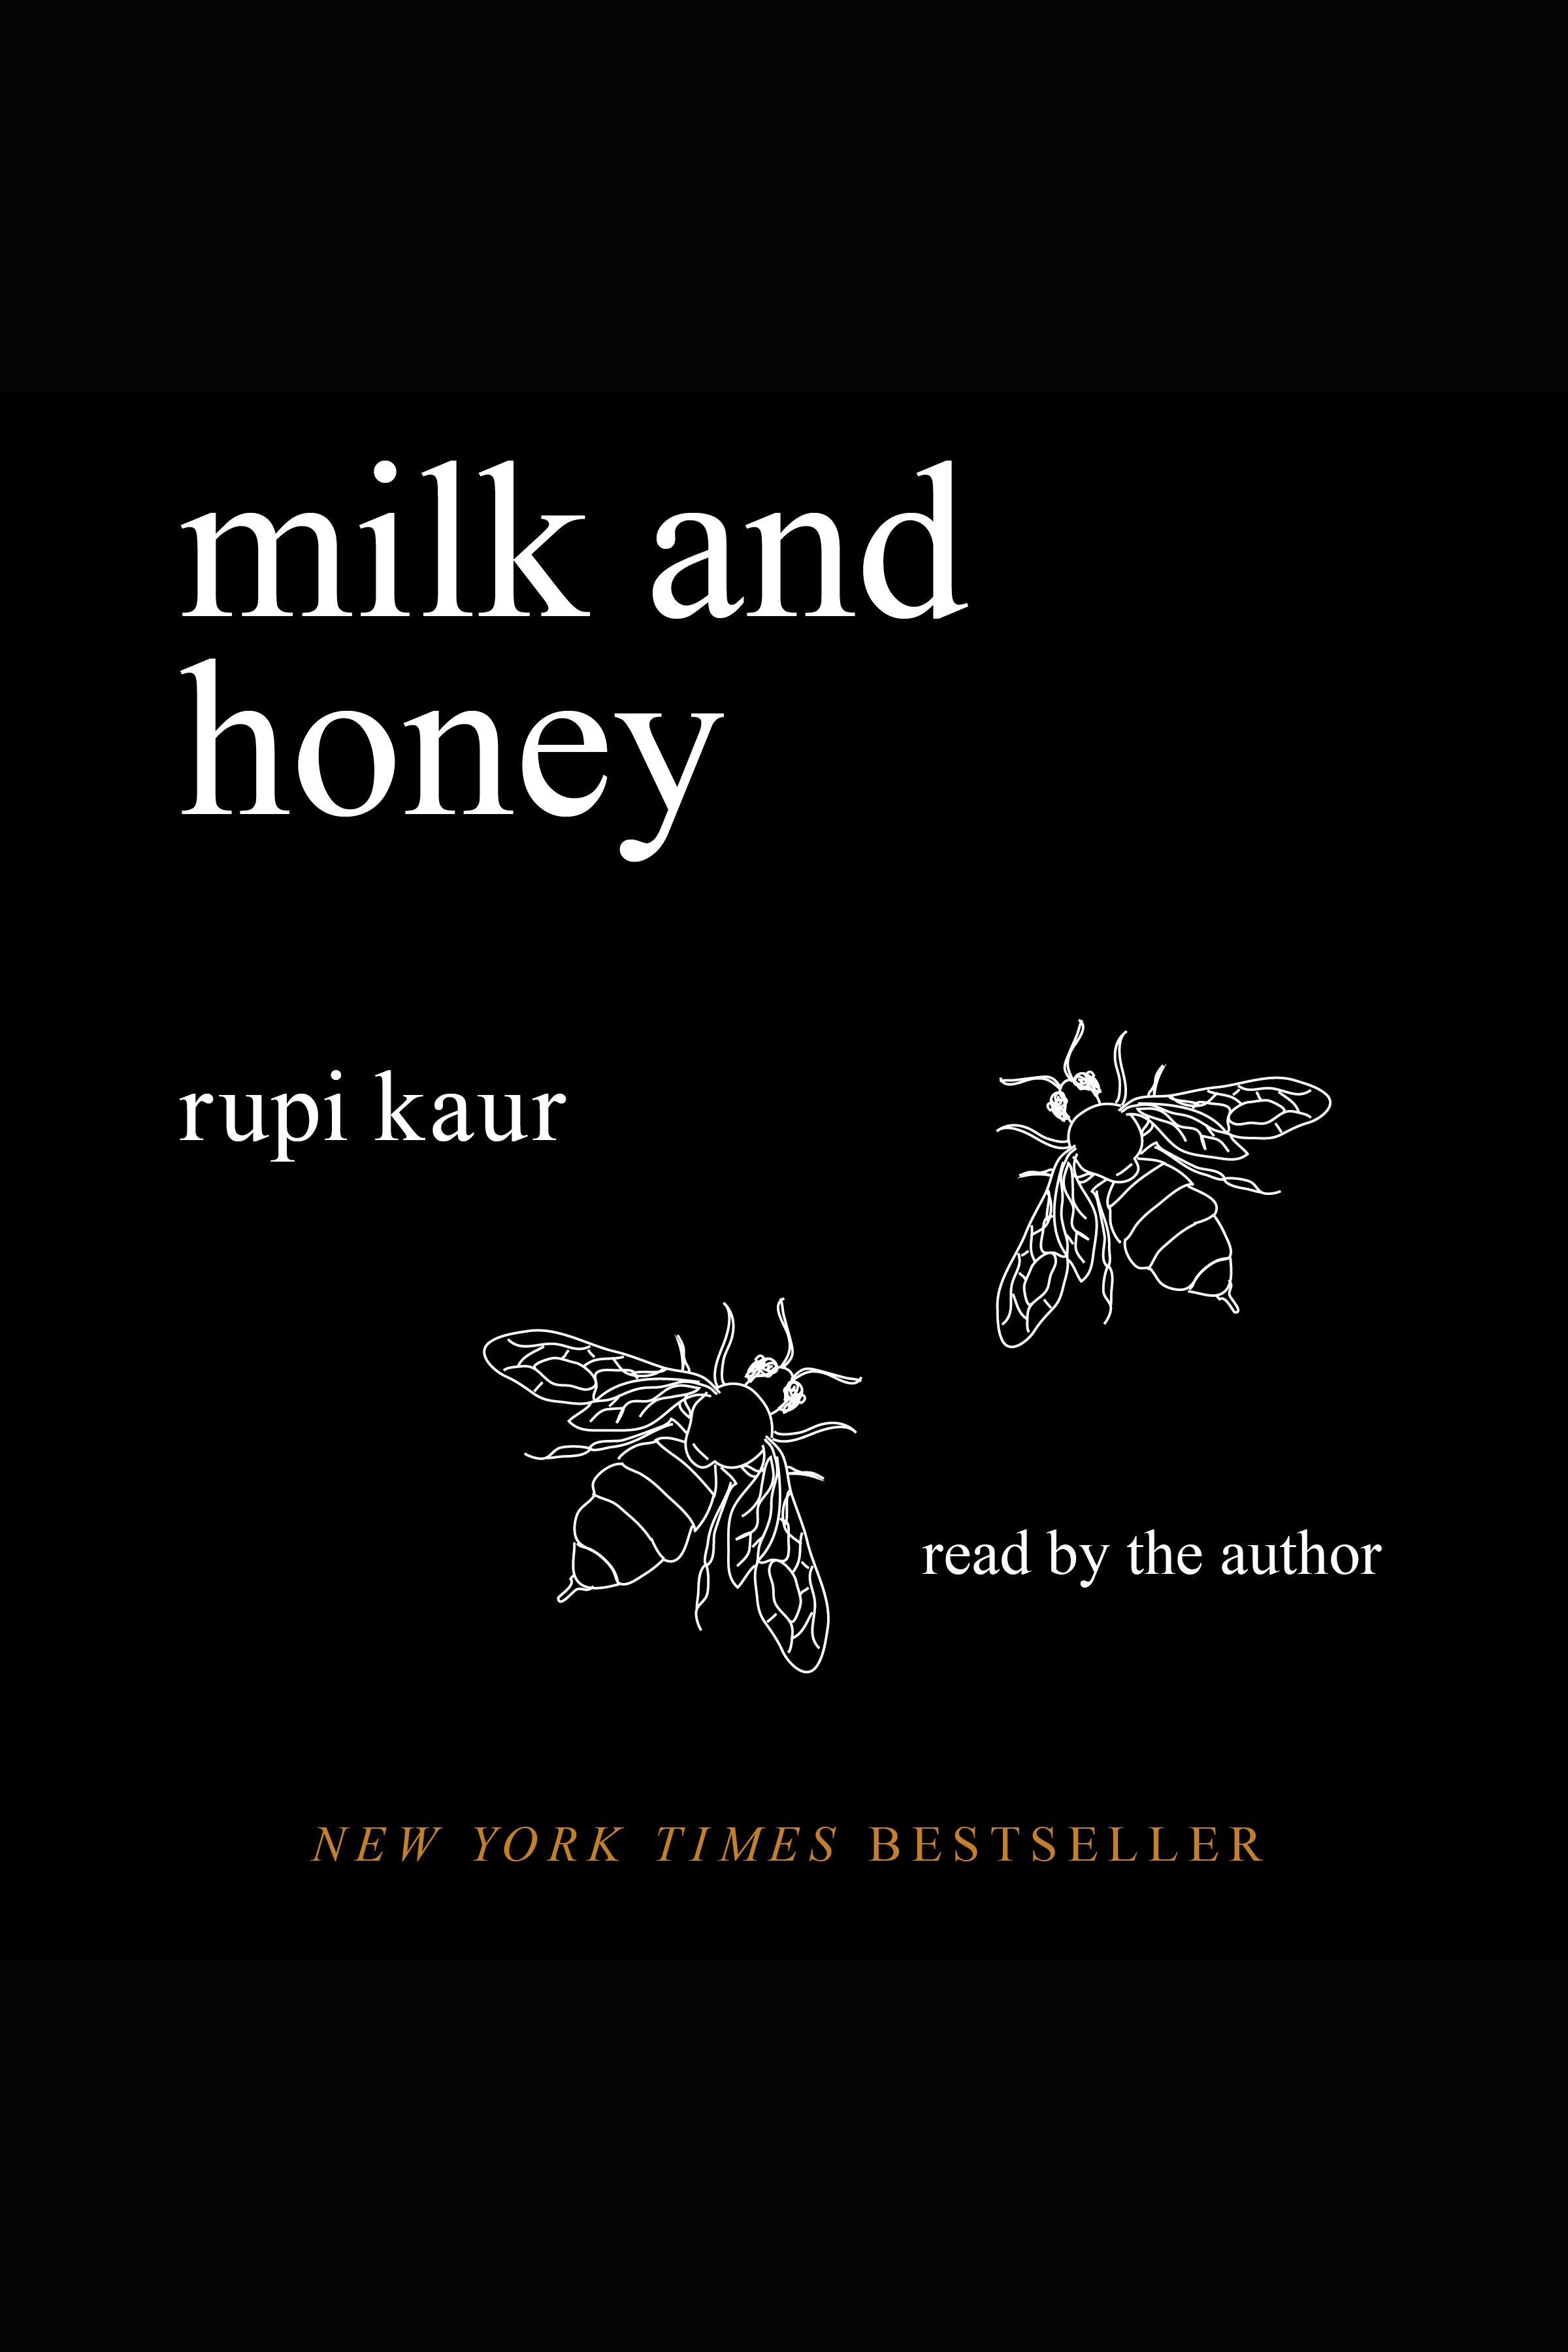 Milk and honey [AudioEbook]